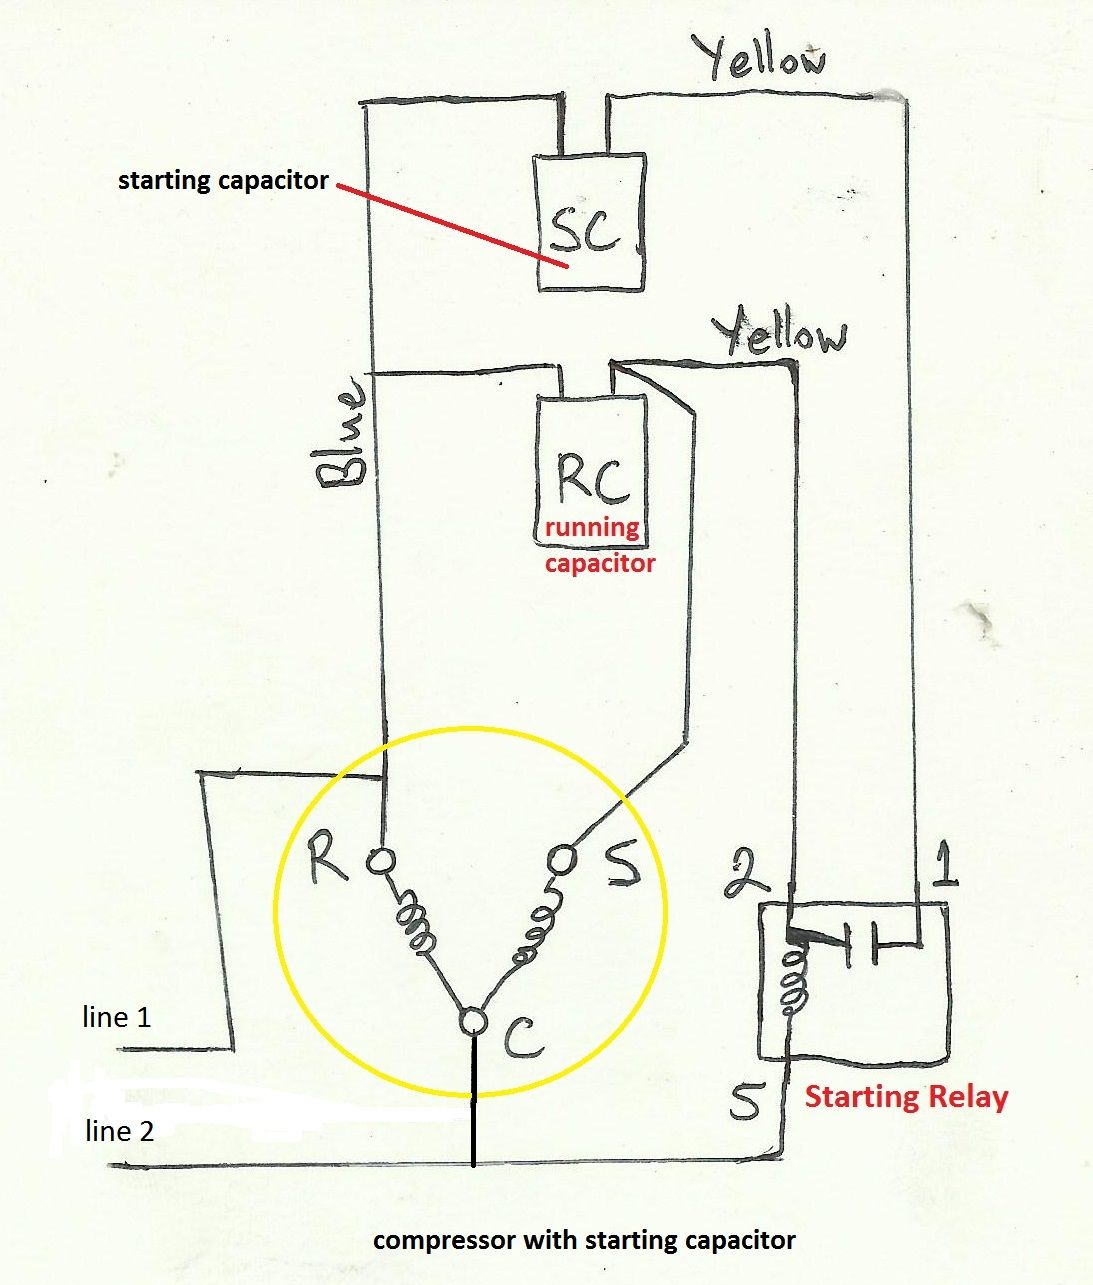 50528d800da7d87408a55b396c2aa5e6 bel air compressor wiring diagram air compressor pump replacement air compressor wiring harness at soozxer.org